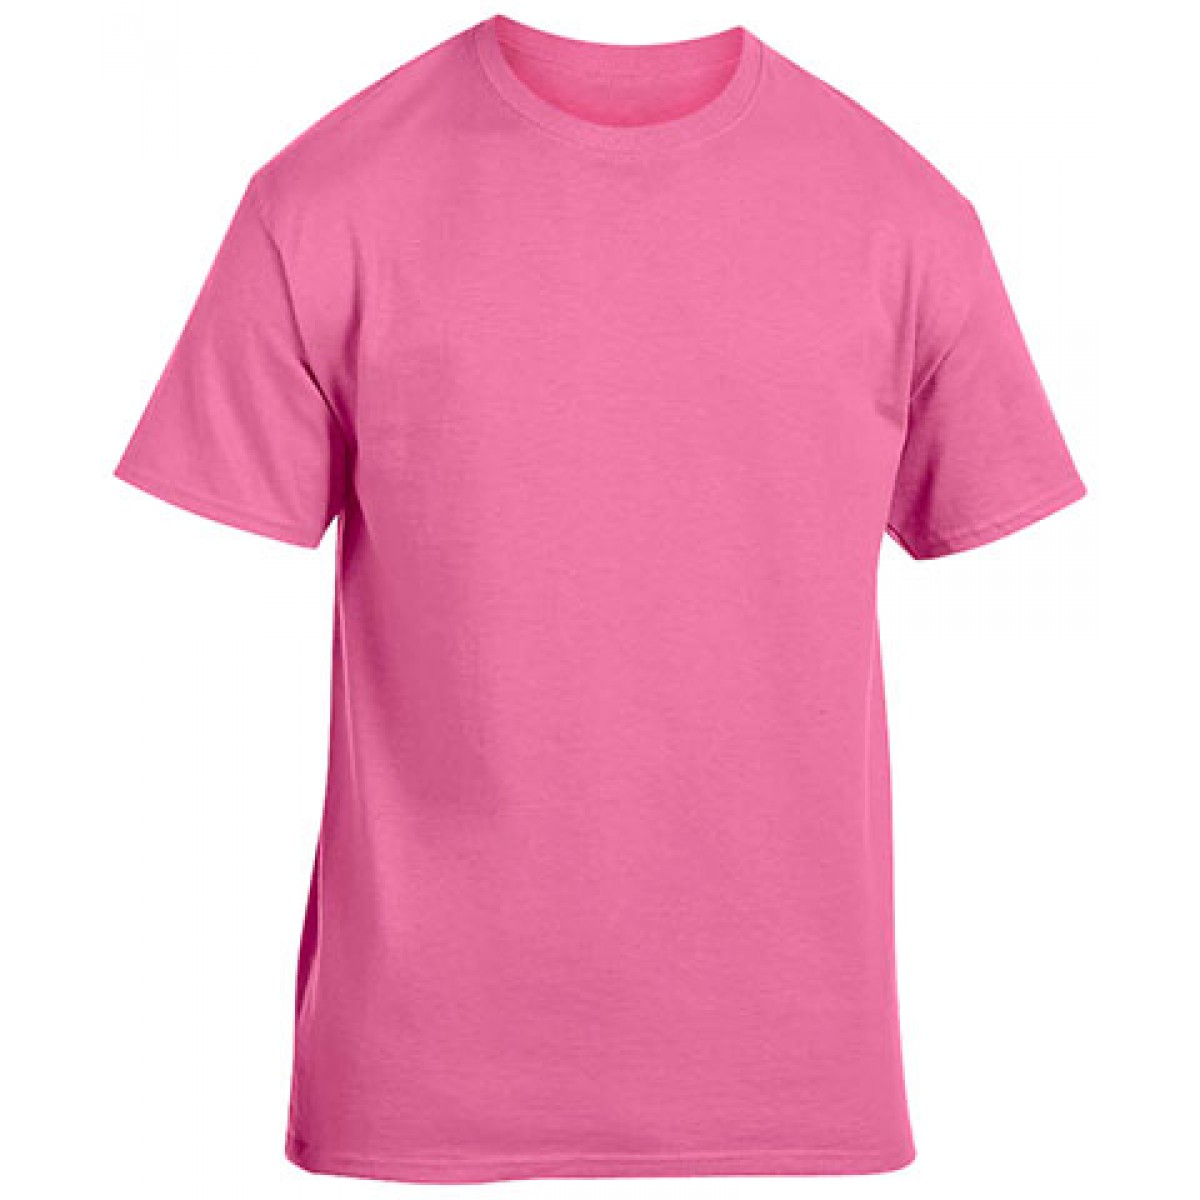 Heavy Cotton Activewear T-Shirt-Safety Pink-3XL